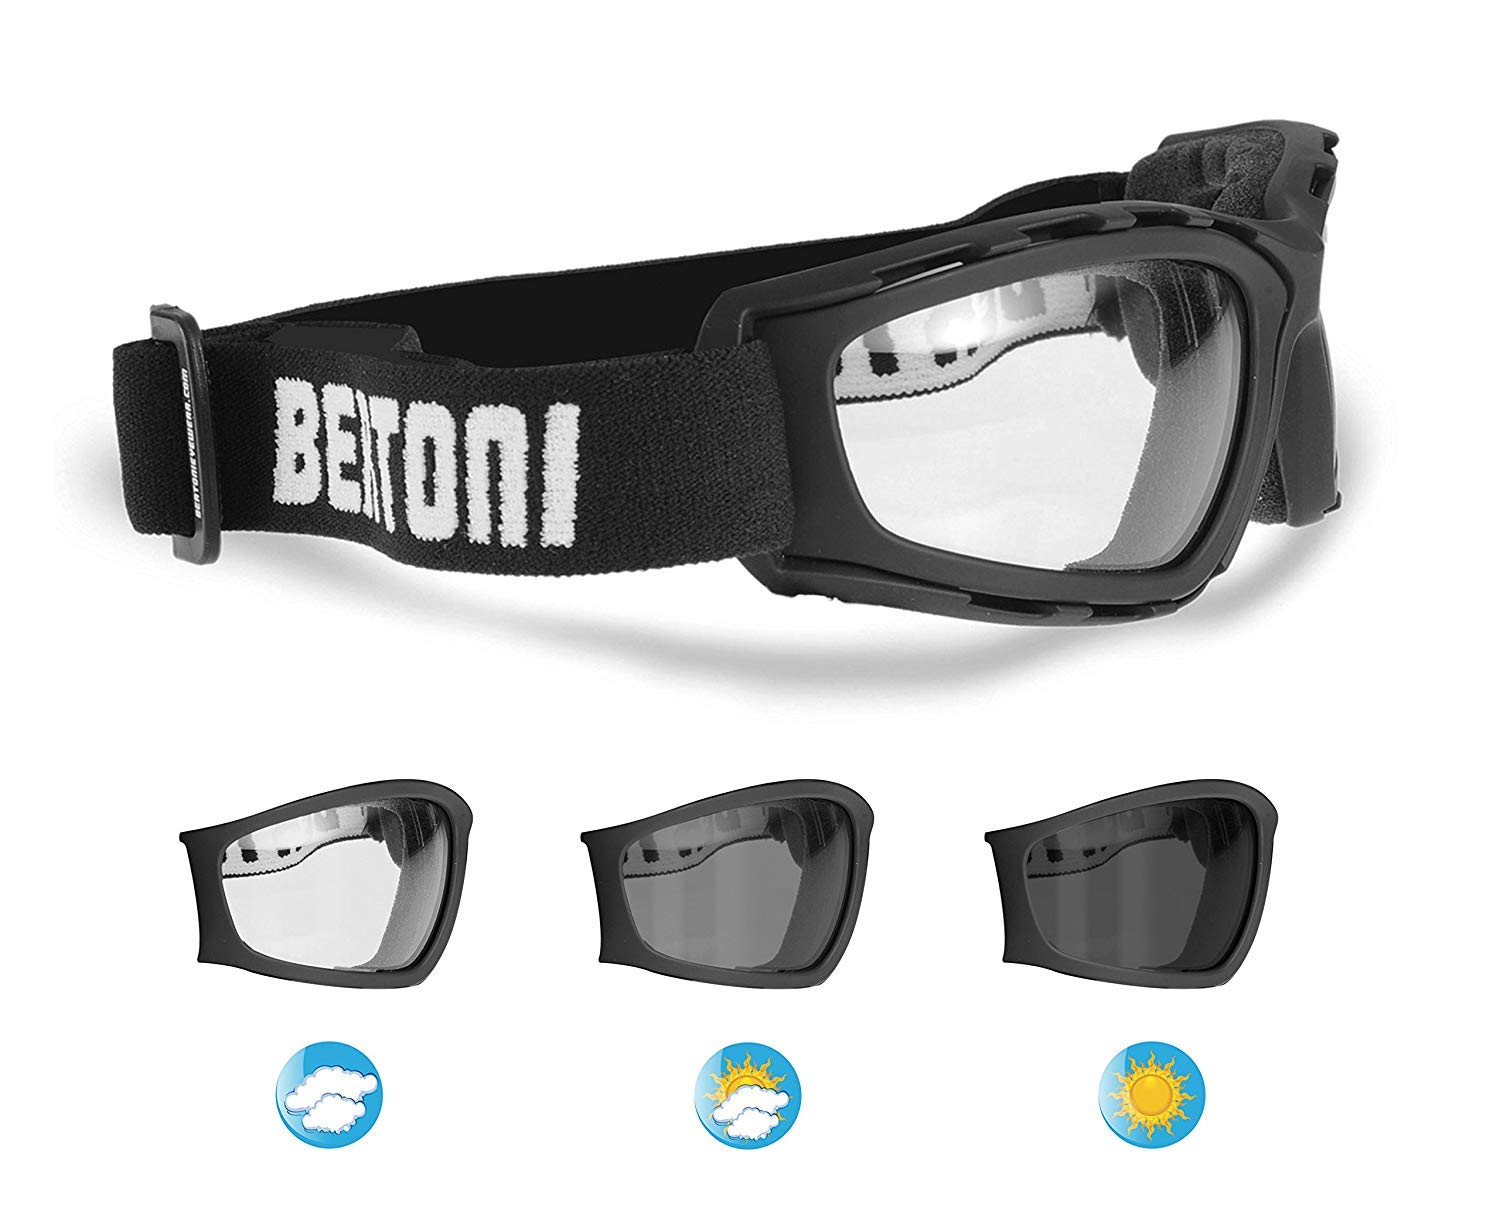 Photochromic Motorcycle Goggles Extreme Sports Sunglasses Powersports Goggles Antifog Lens cod. F120A by Bertoni Italy Wraparound Windproof Padded Glasses